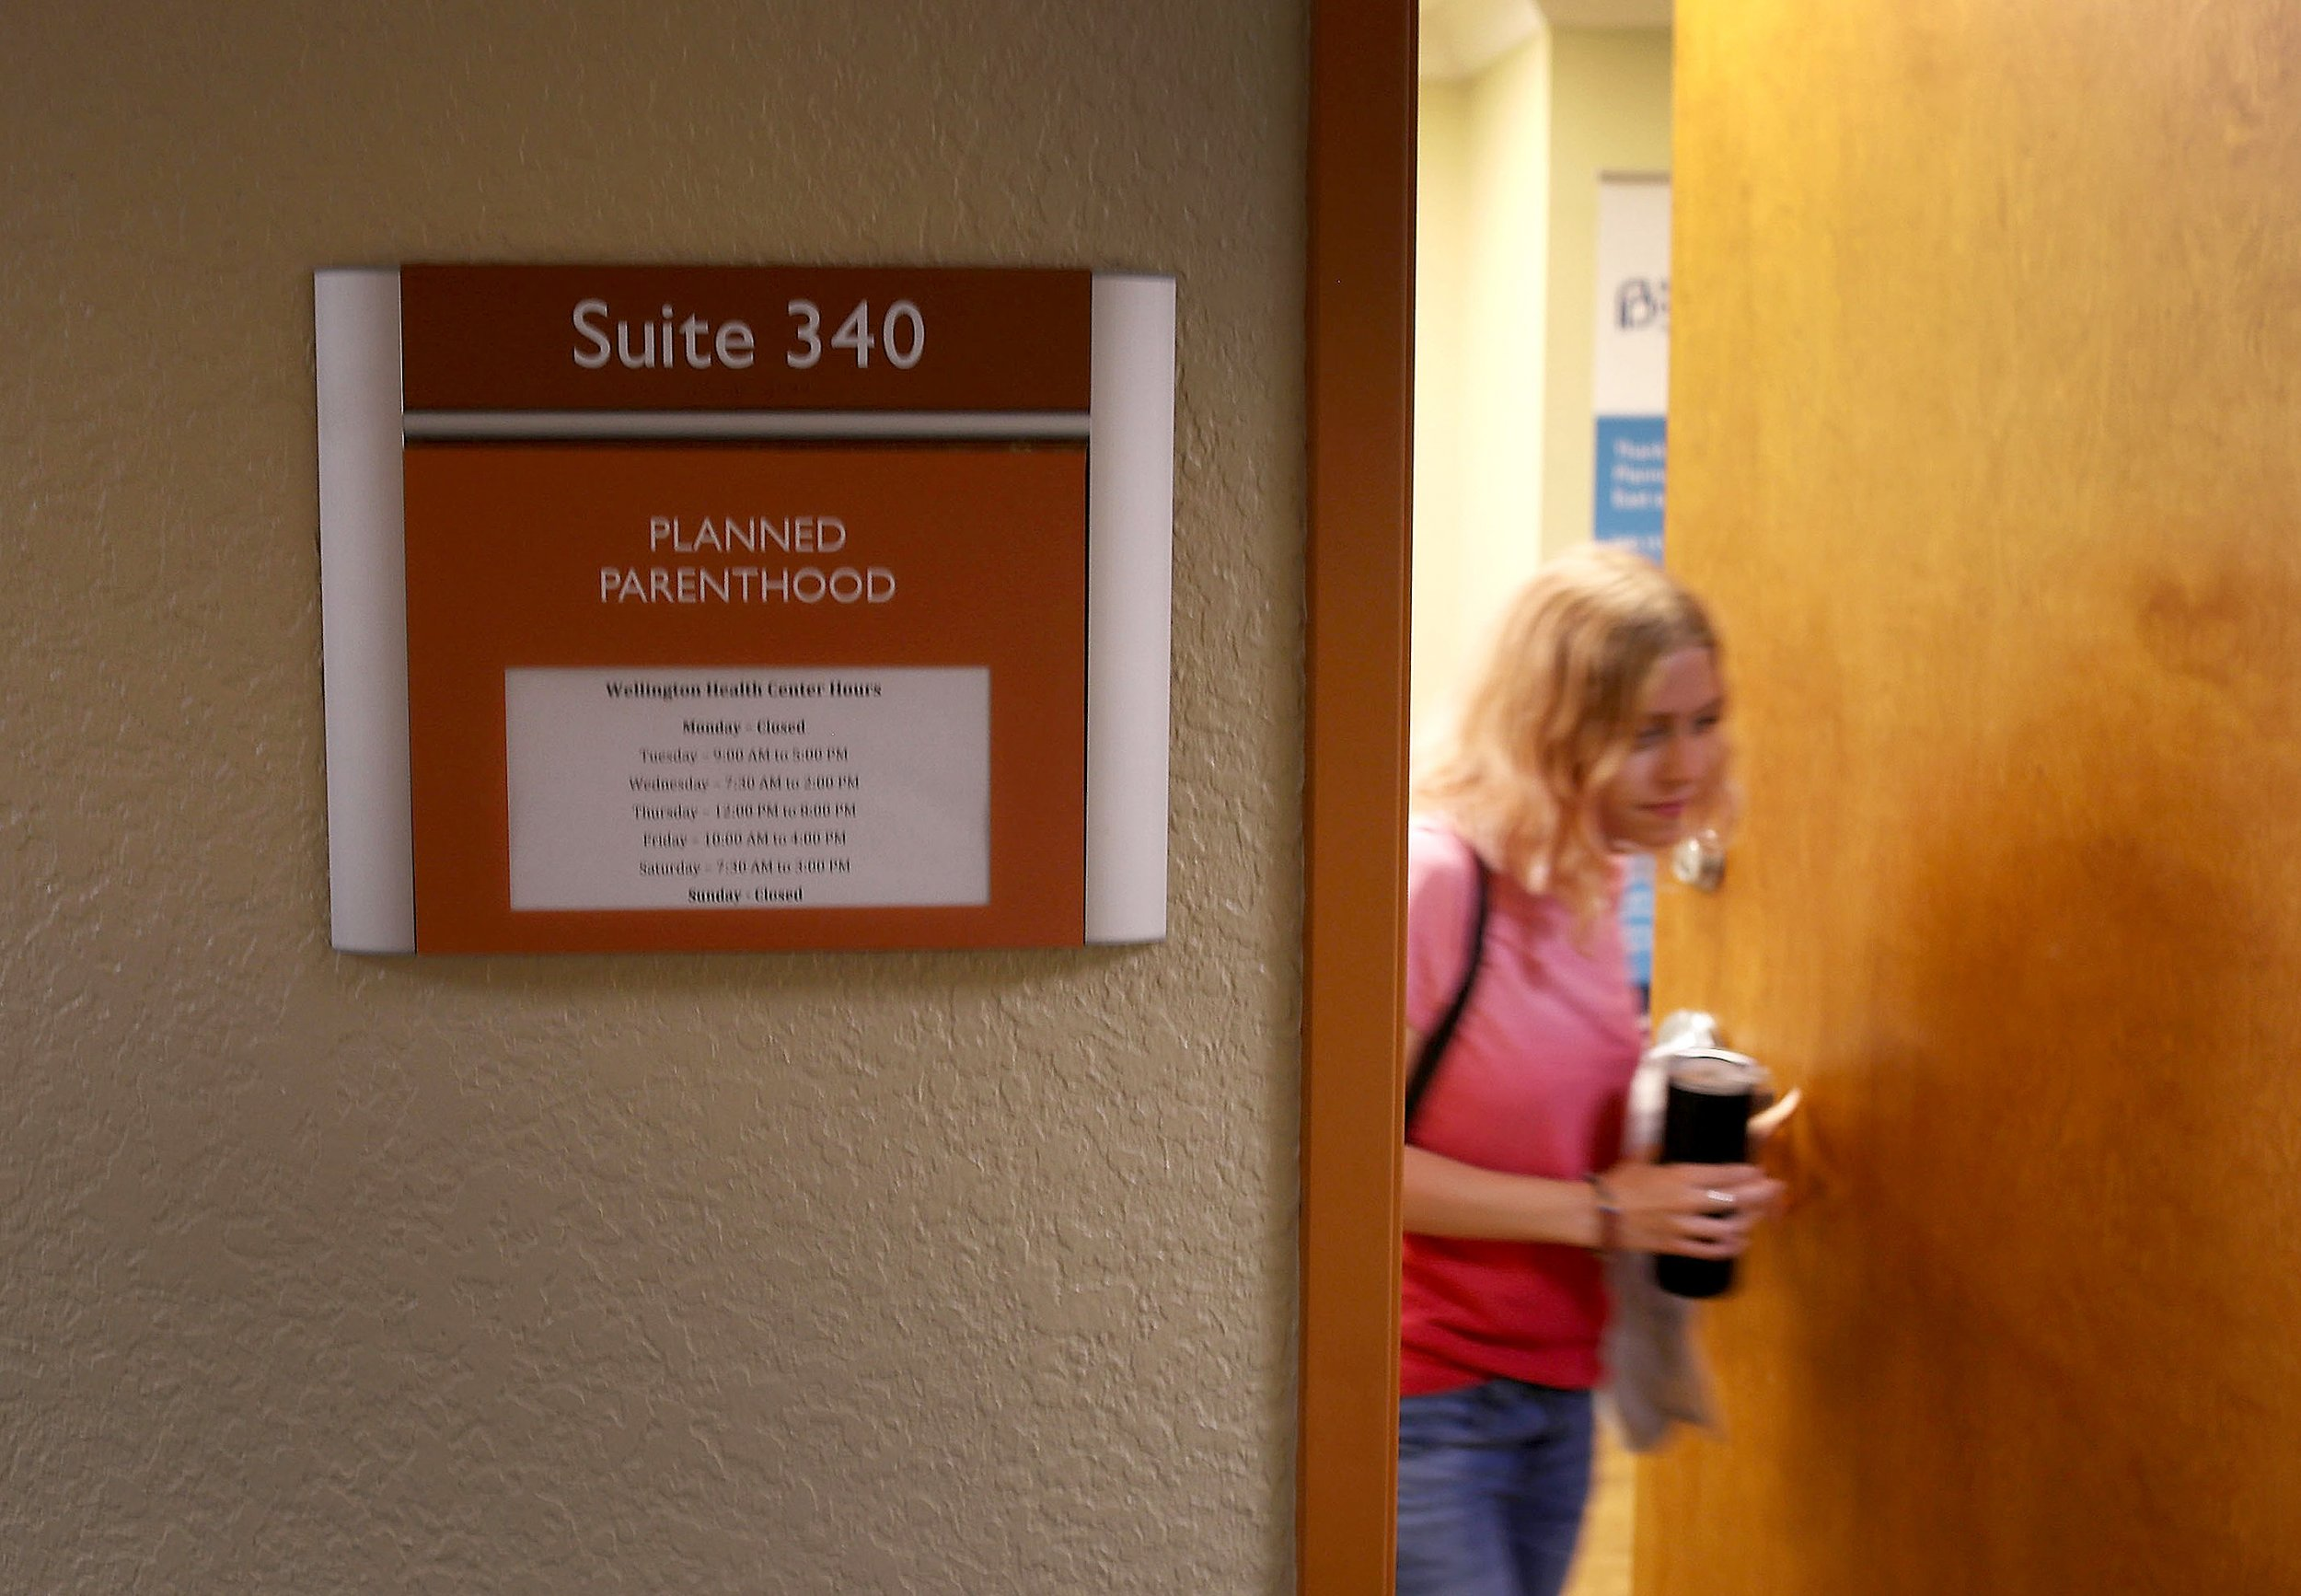 florida abortion law judge ruling parental consent